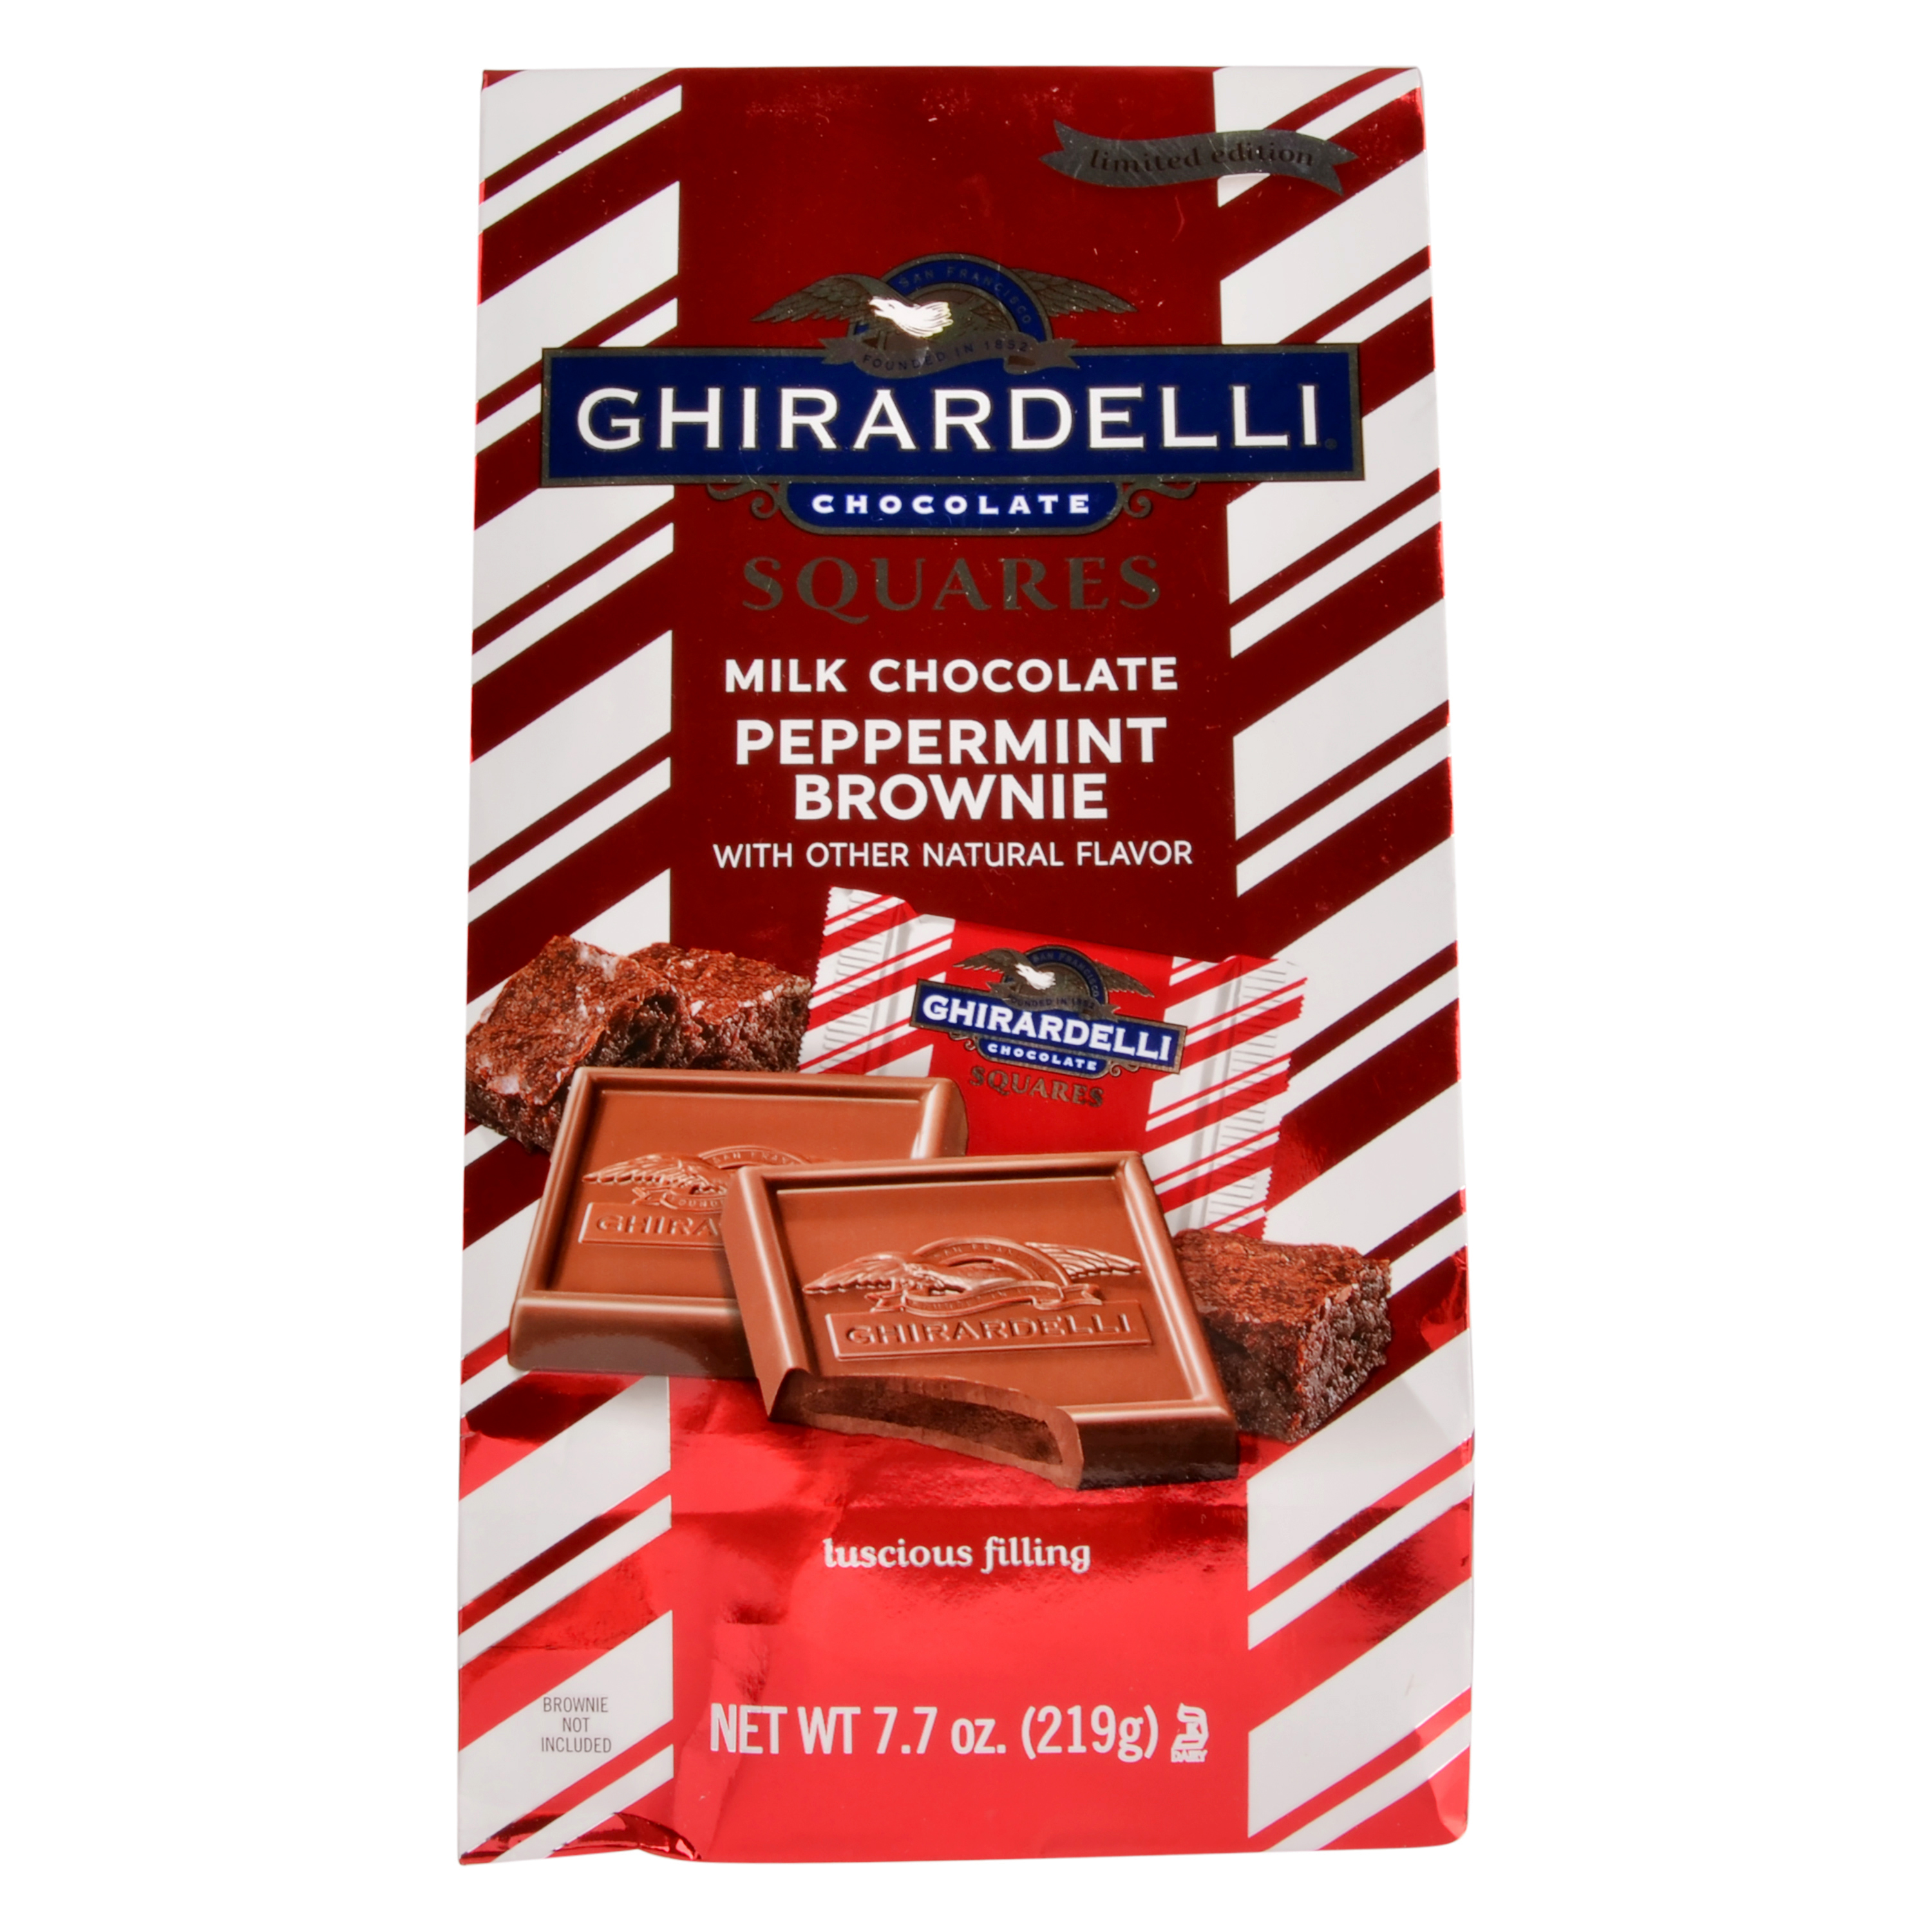 Ghirardelli Chocolate Squares, Milk Choocolate Peppermint Brownie, 7.7 oz